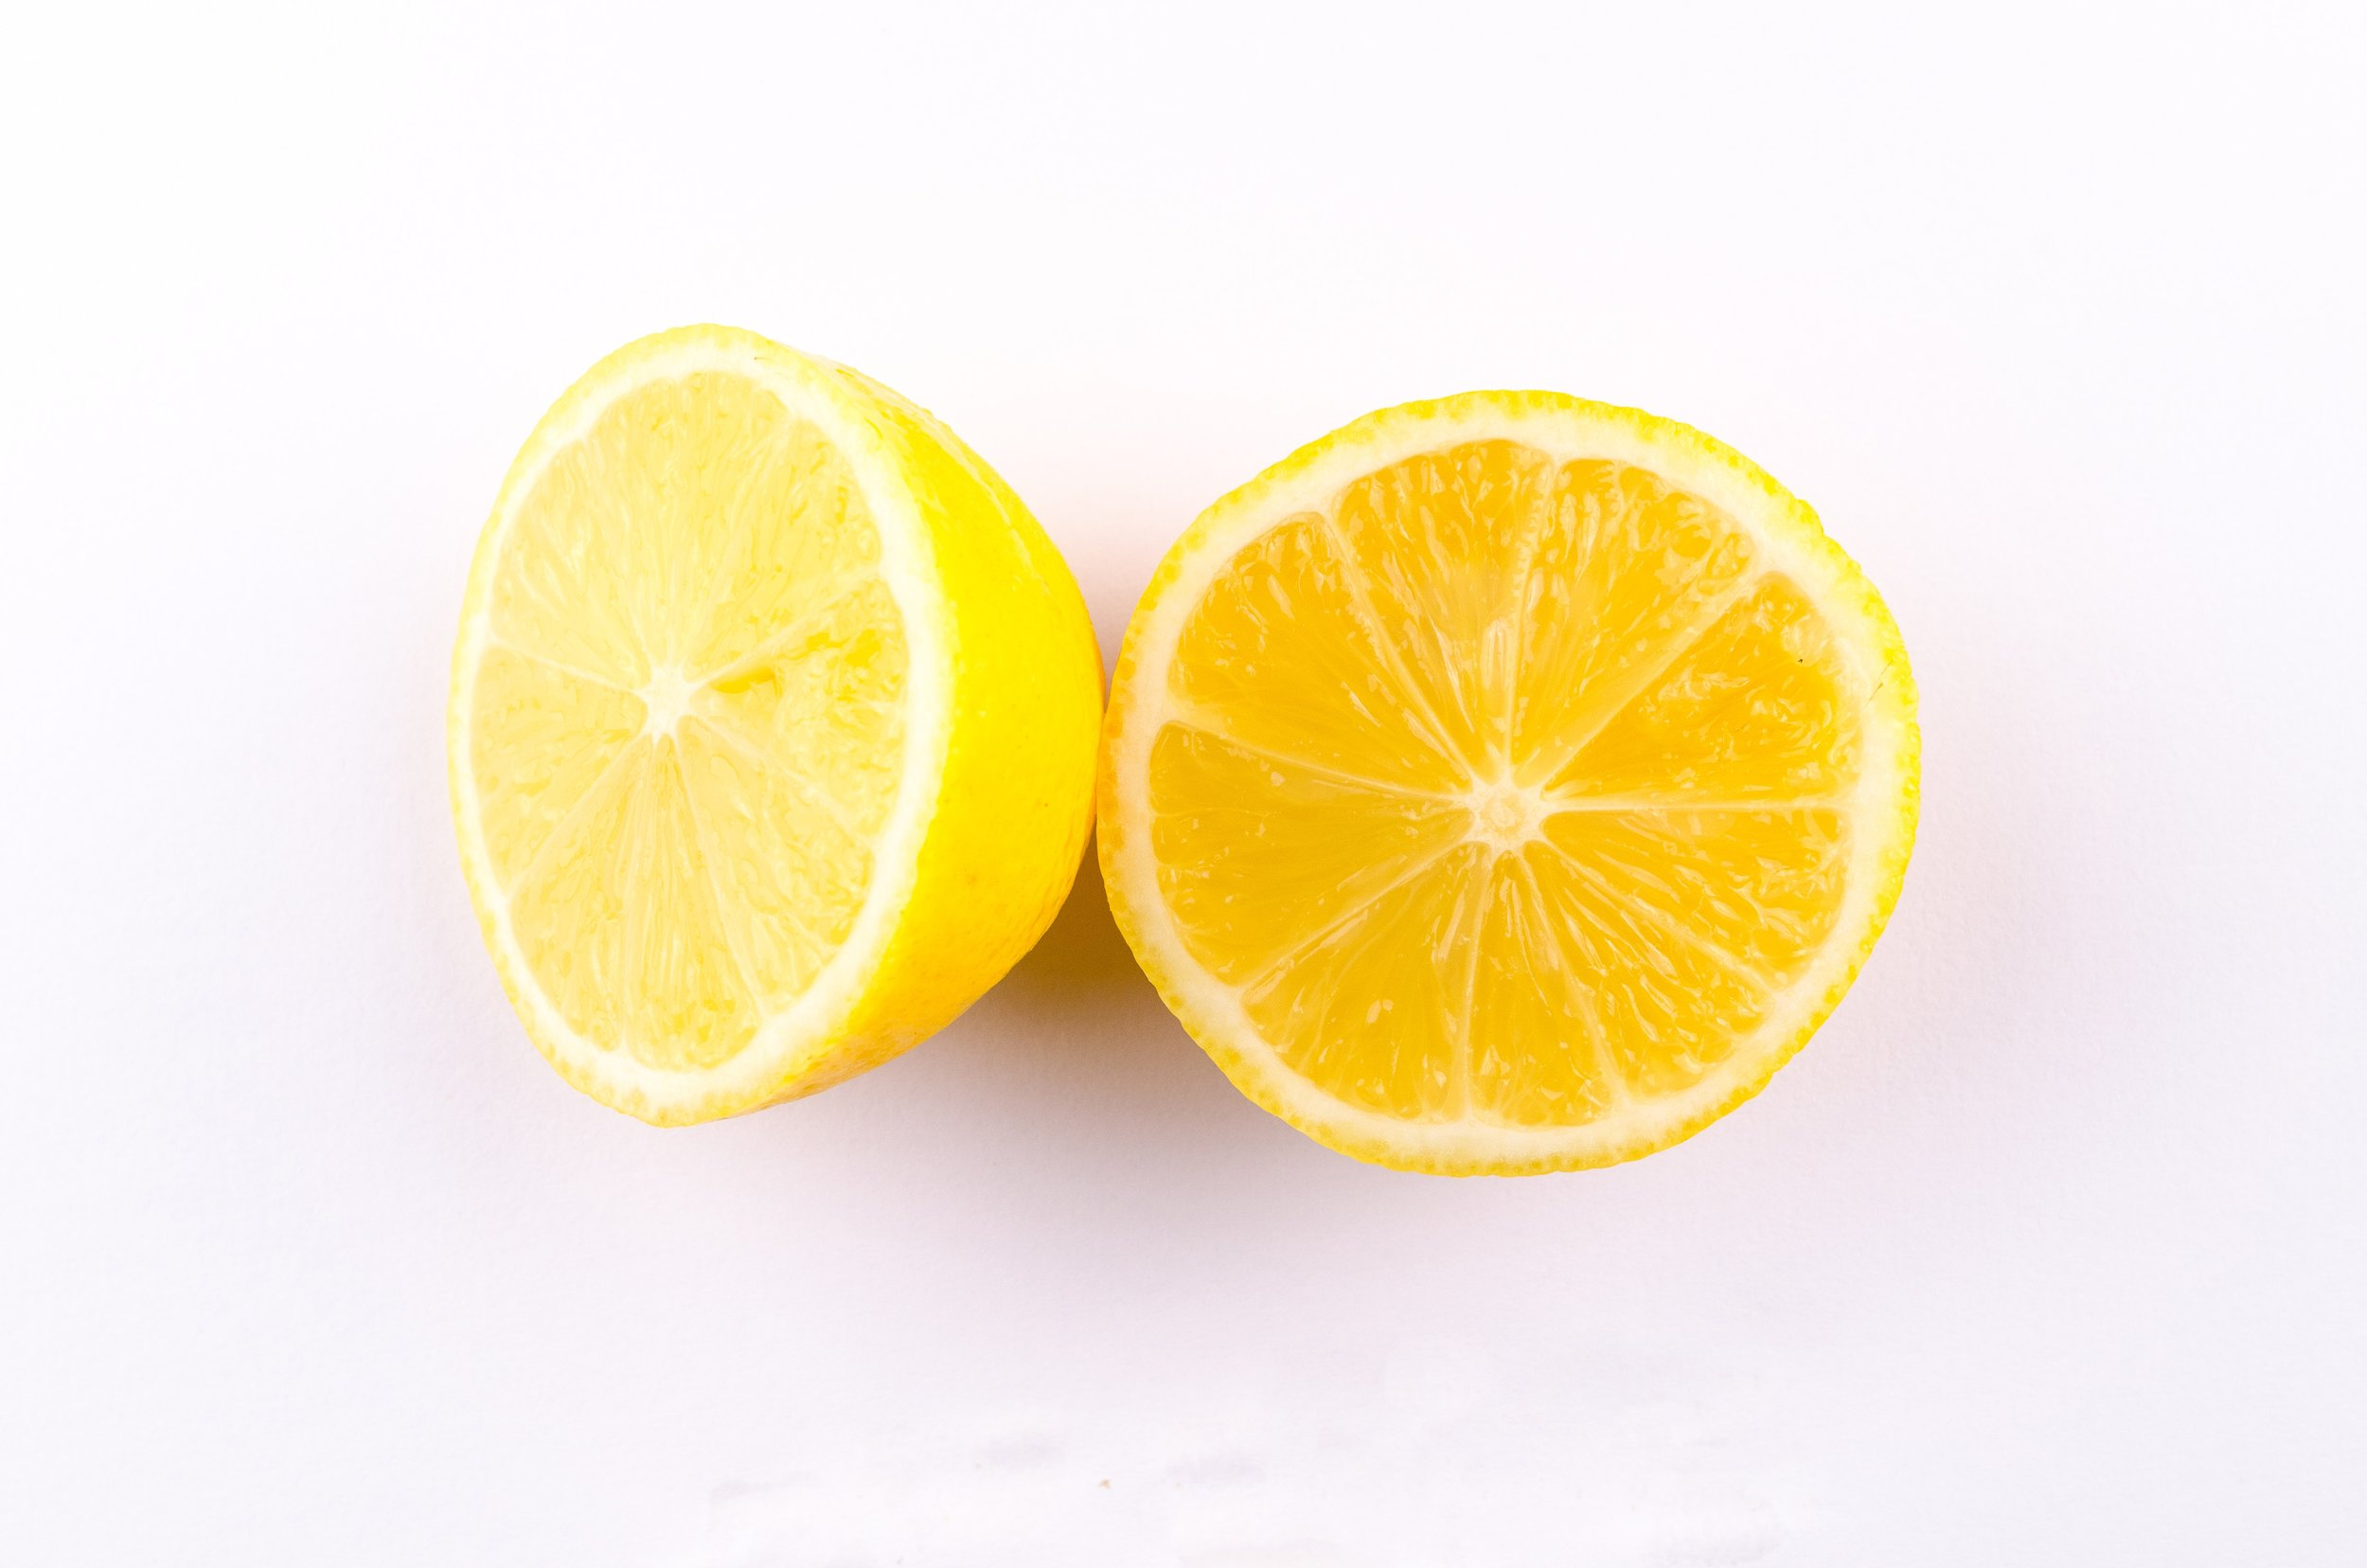 acid-bright-citrus-1414110.jpg